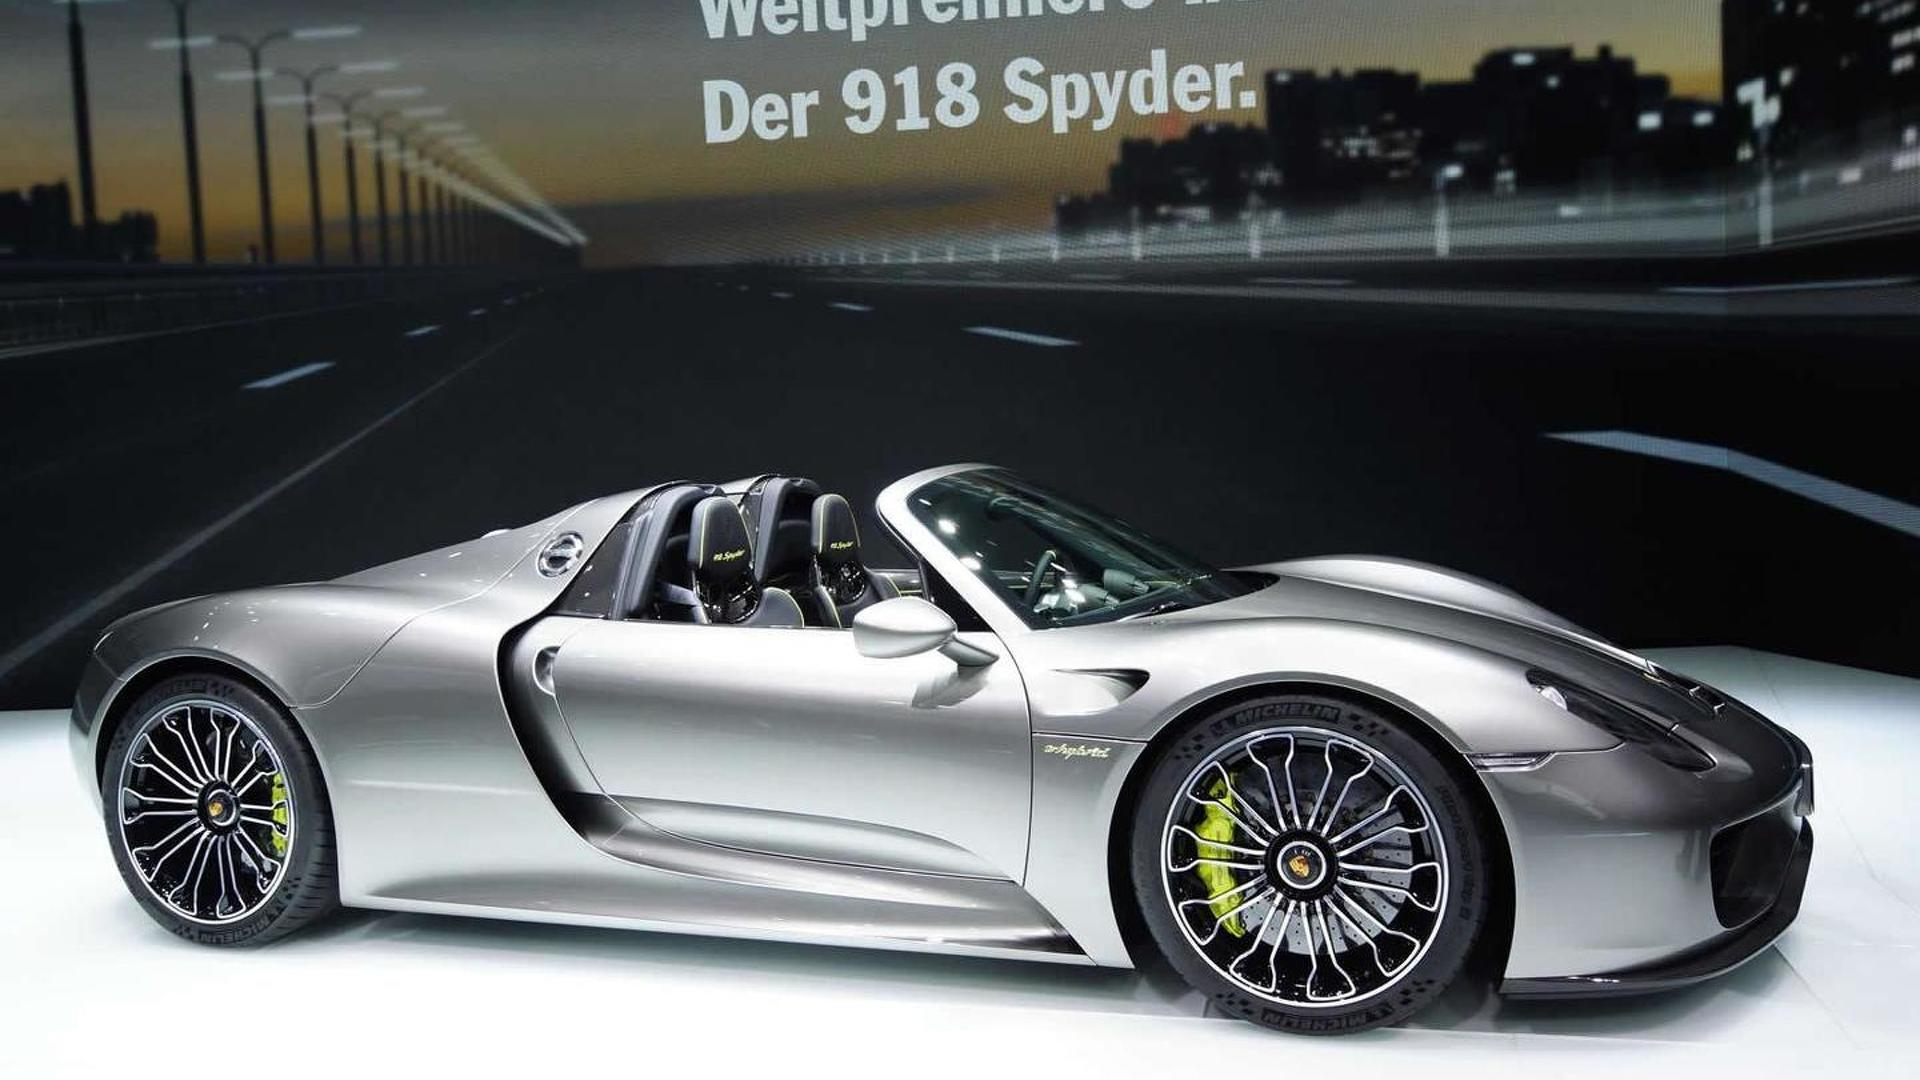 porsche 918 spyder has the potential to be even quicker on the ring video product 2013 09 17 105731